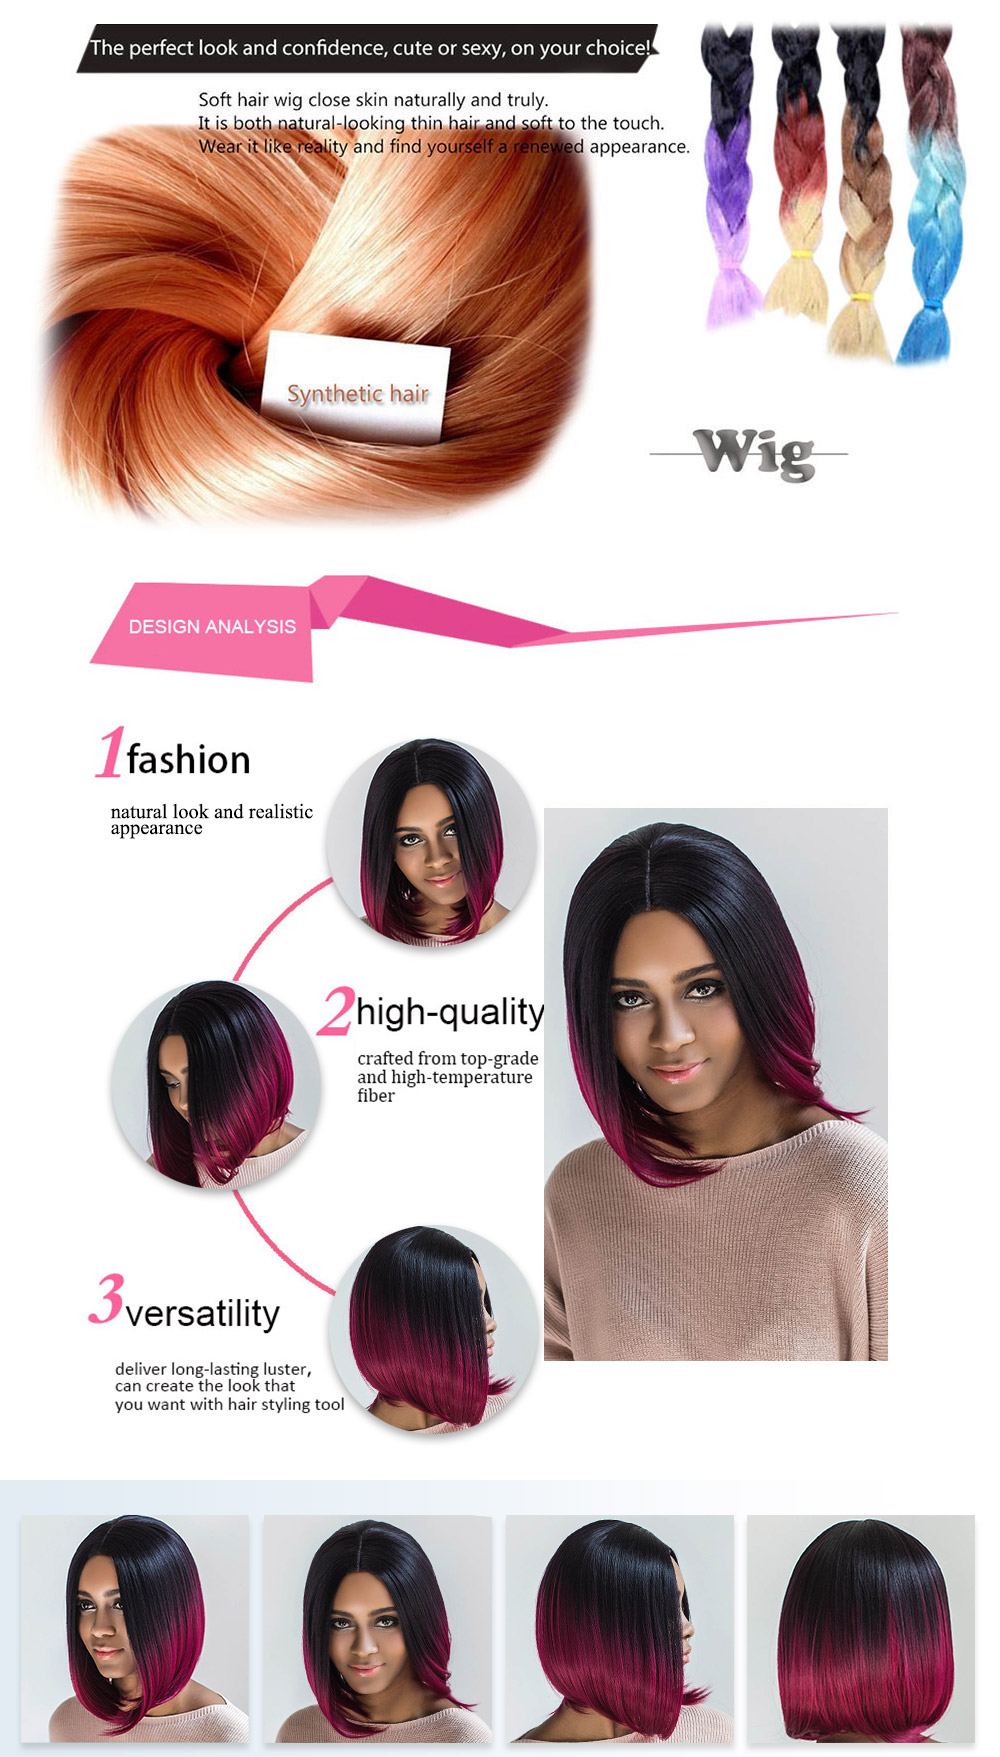 AISIHAIR Straight Middle Parting Mixed Colors Wine Red Wigs Blunt Lob Hairstyle for Women